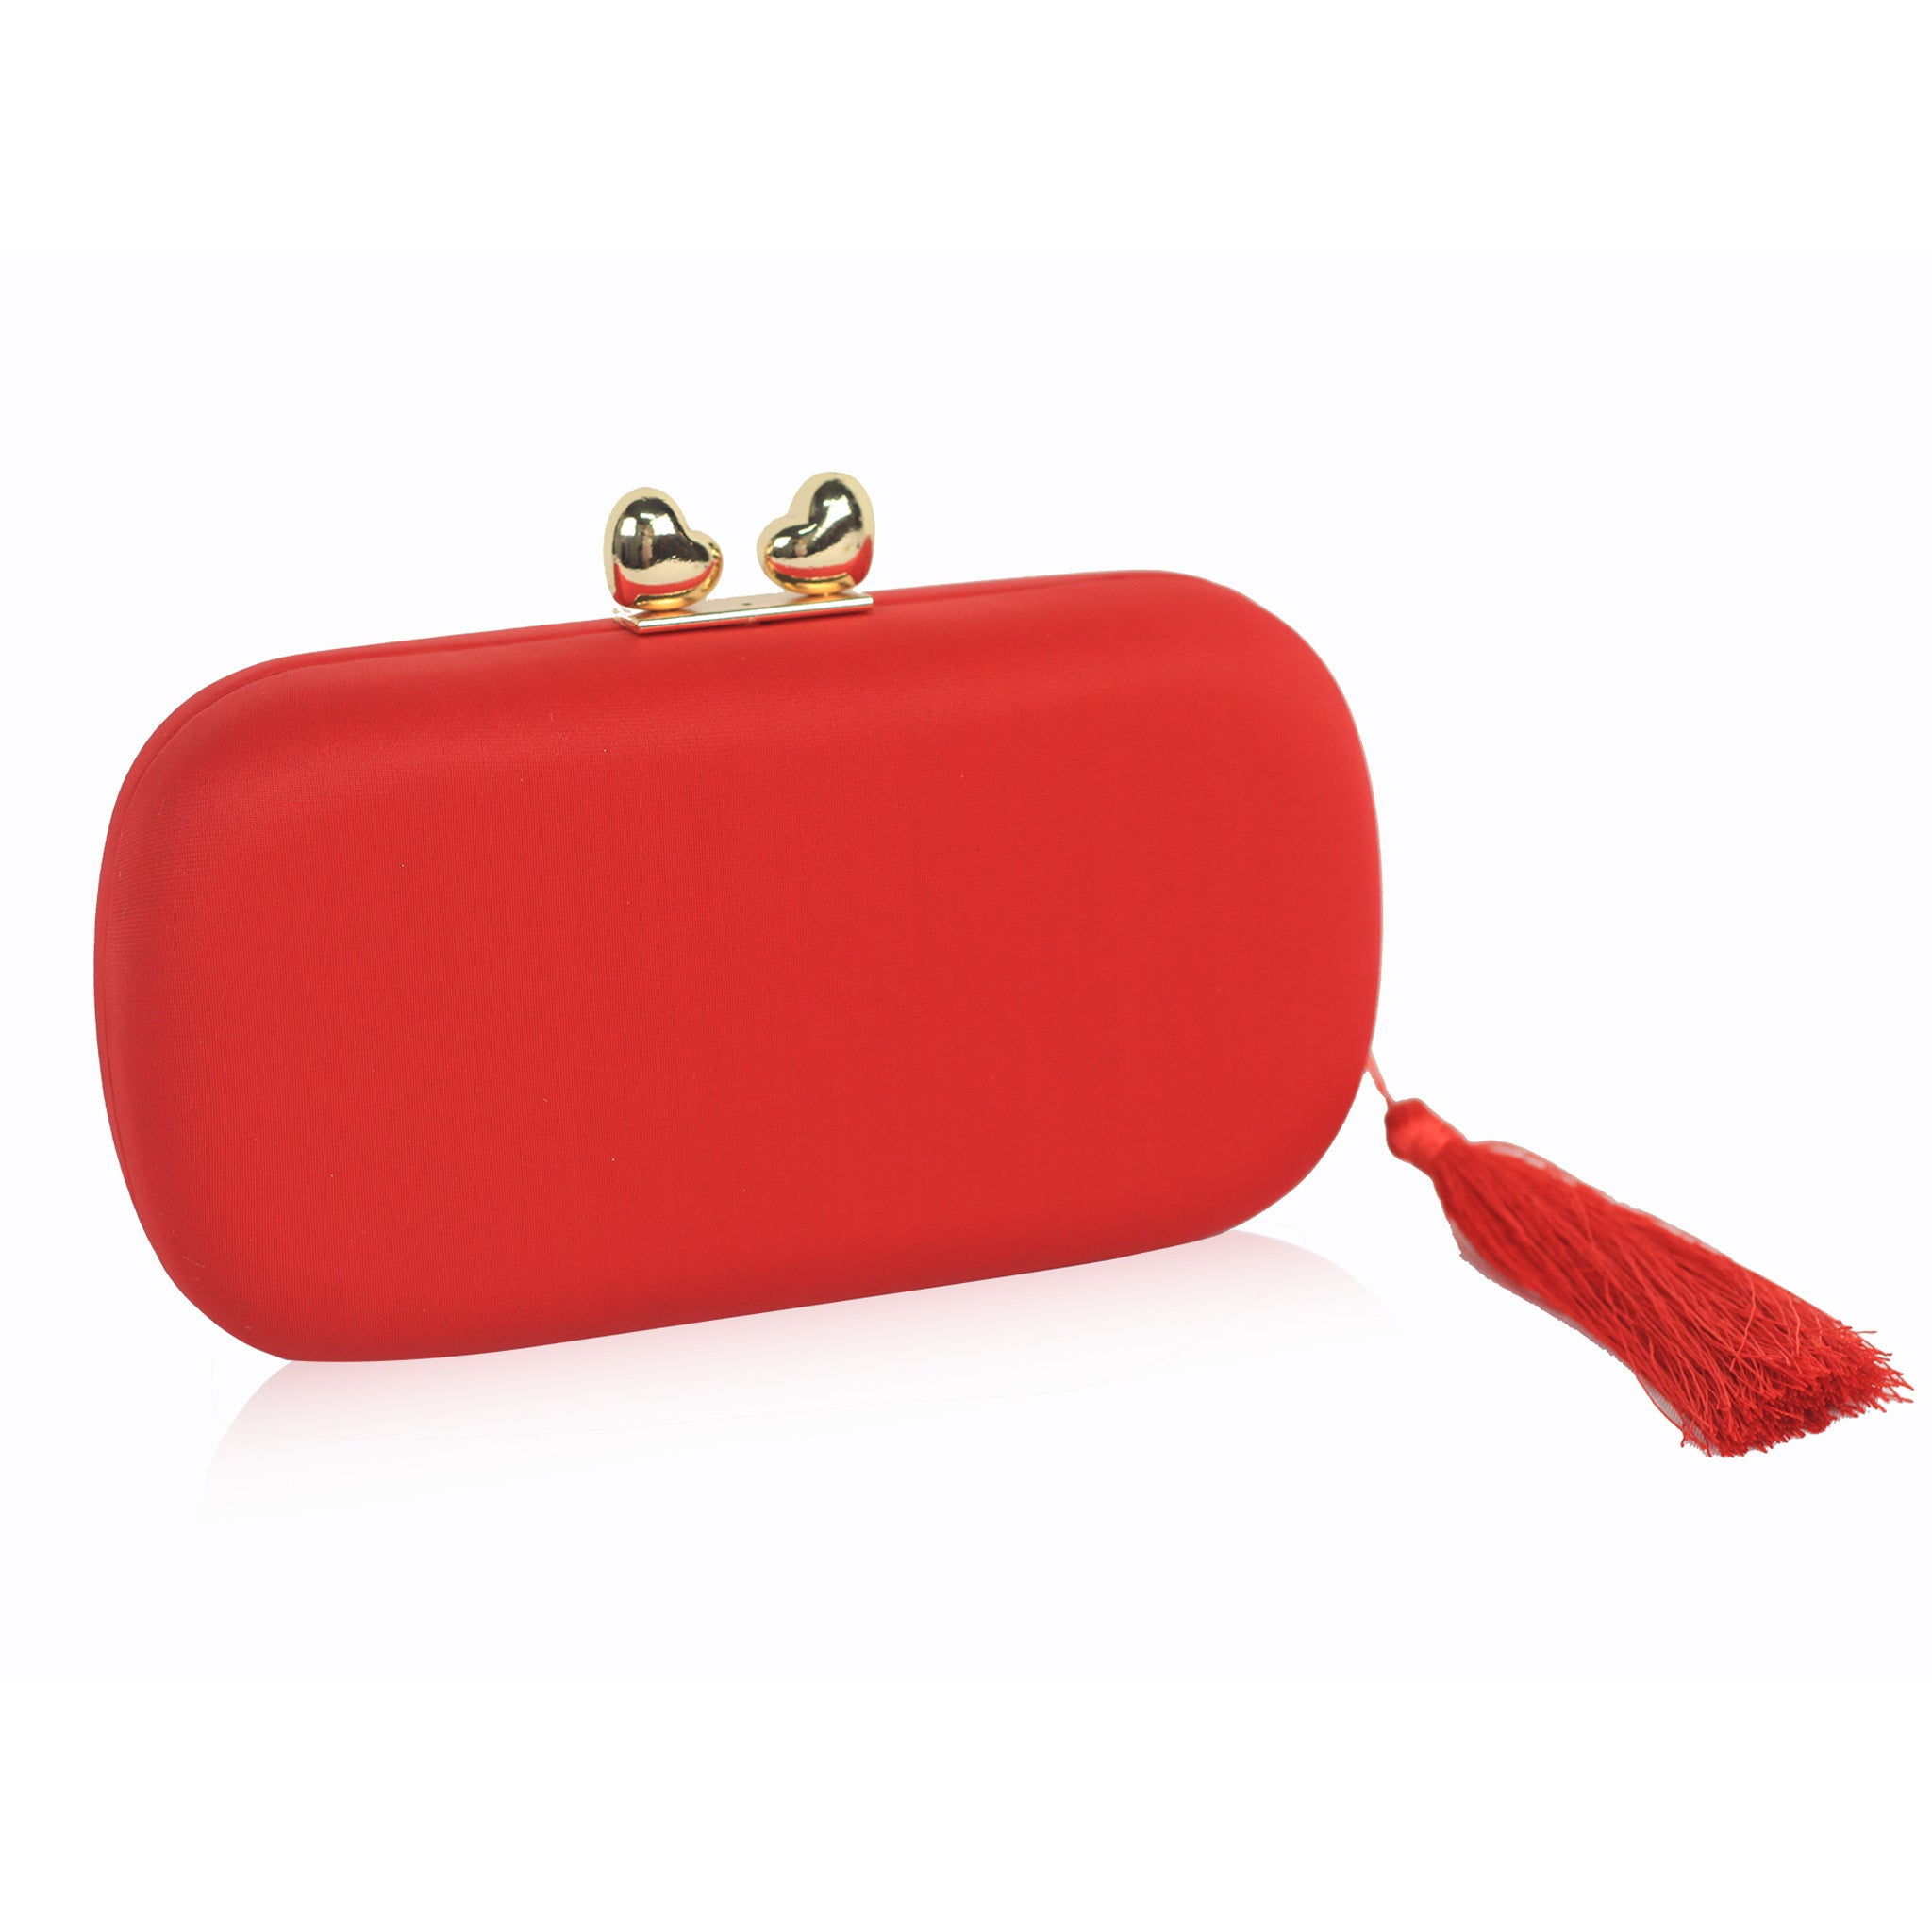 Double Heart Tassel Clutch - Red